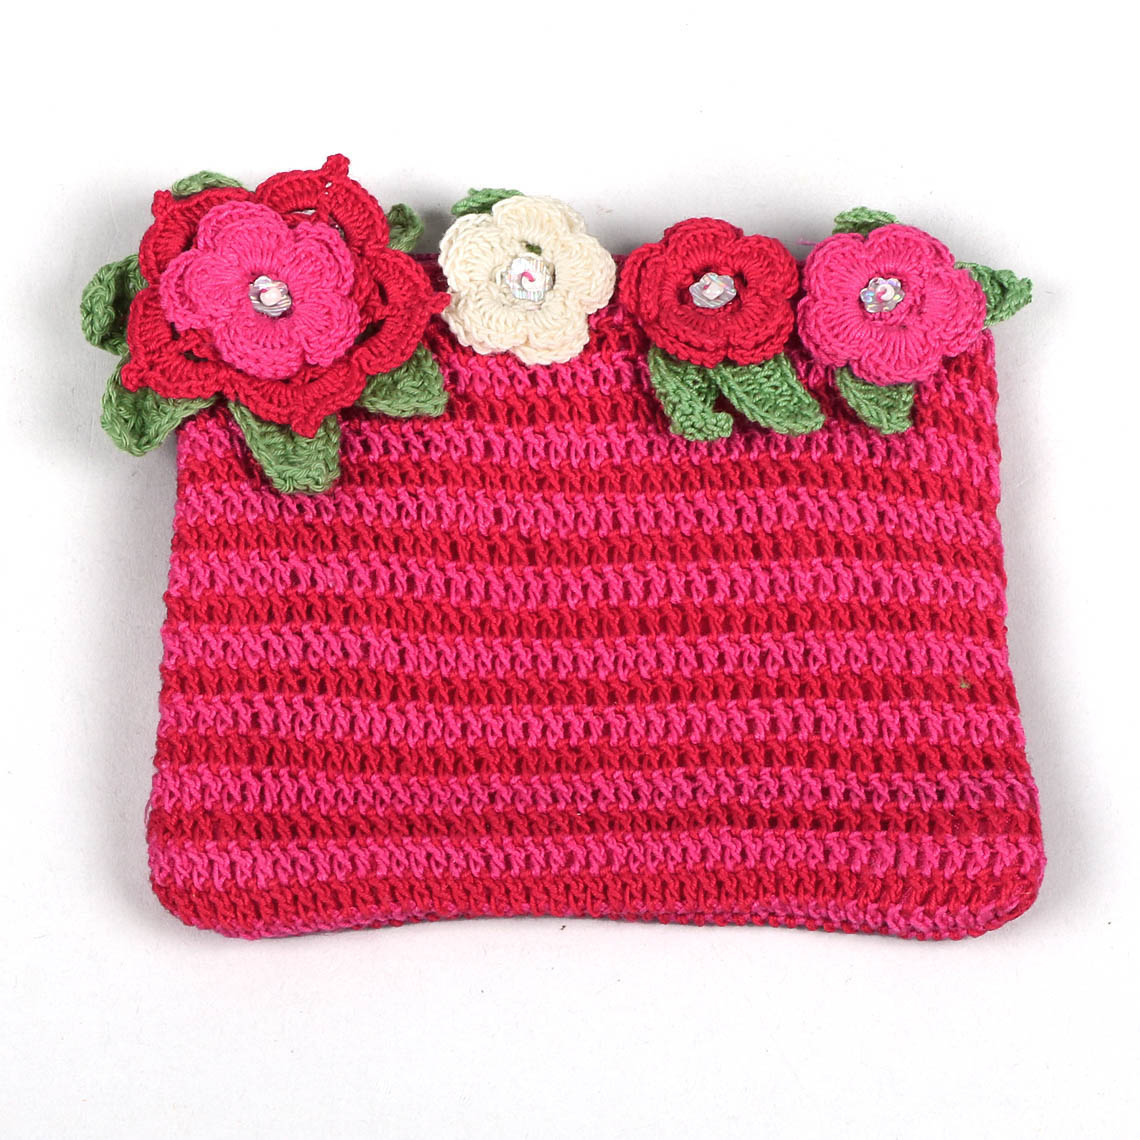 PINK AND RED CROCHET FLOWER PURSE - Trade